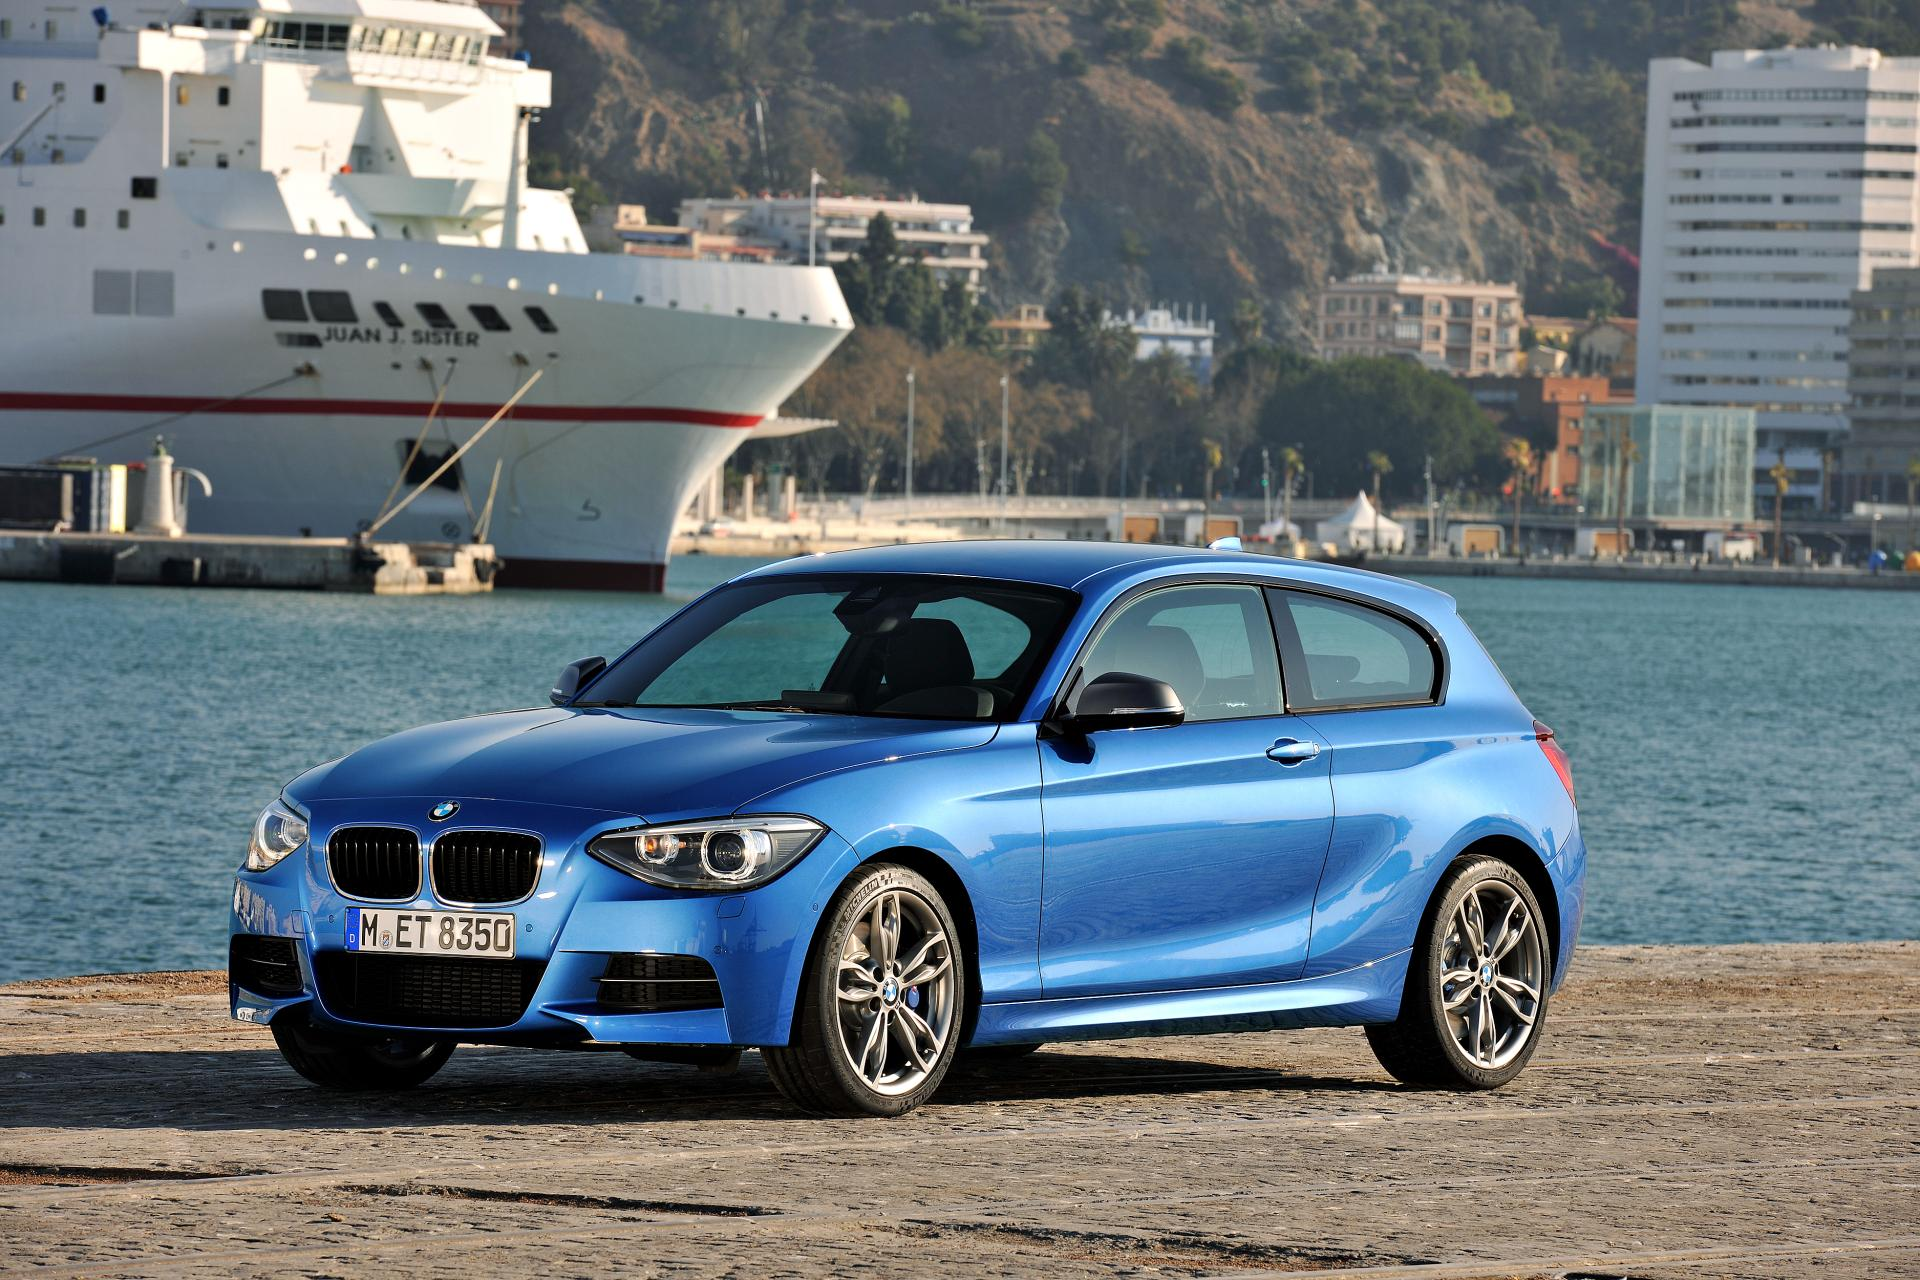 2013 bmw m135i news and information. Black Bedroom Furniture Sets. Home Design Ideas